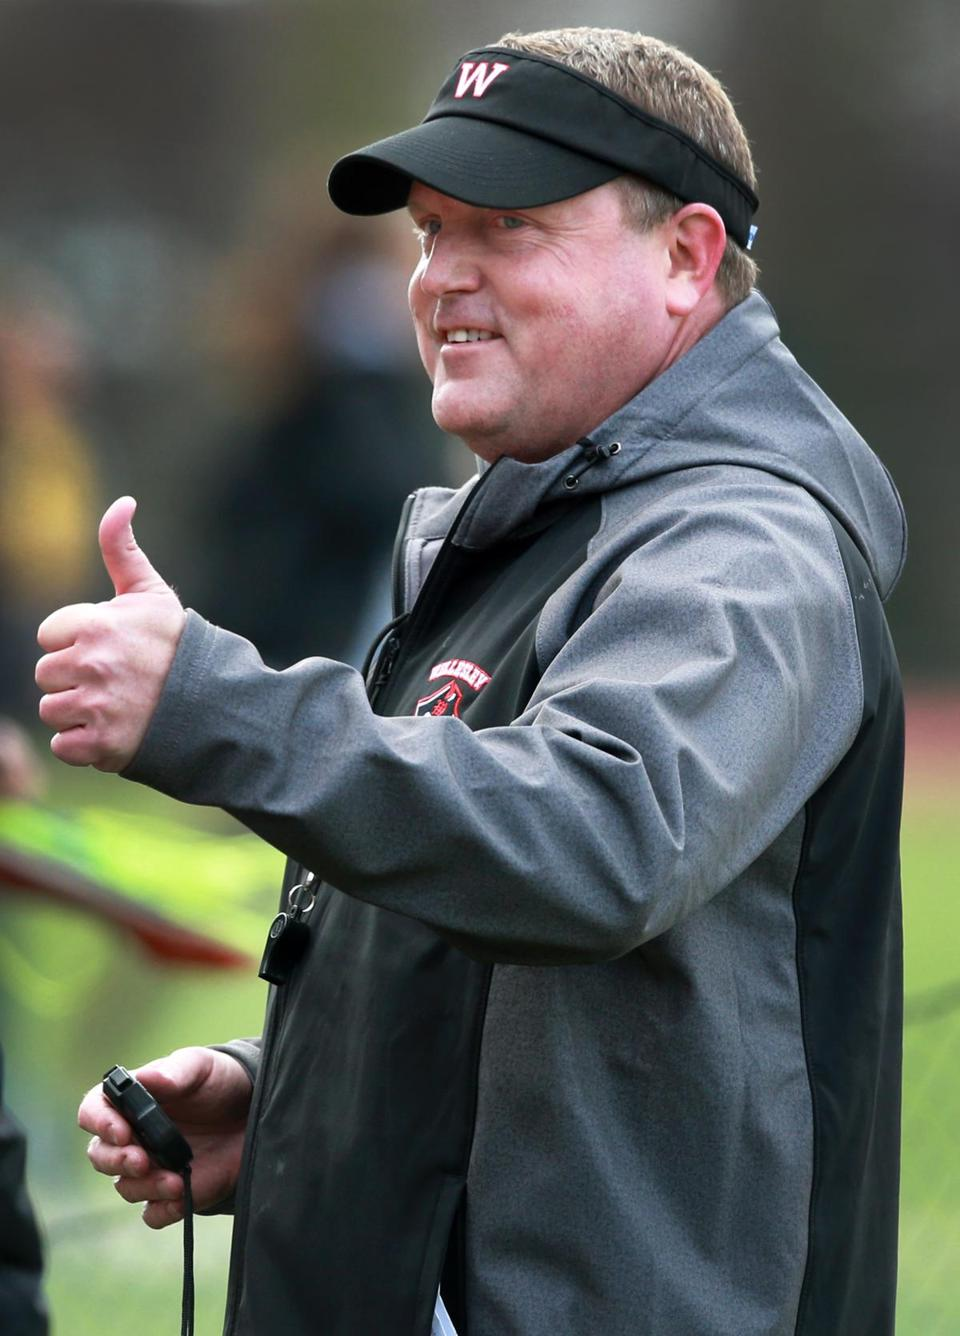 Coach John Griffith likes what he sees during Wellesley's meet against Framingham.